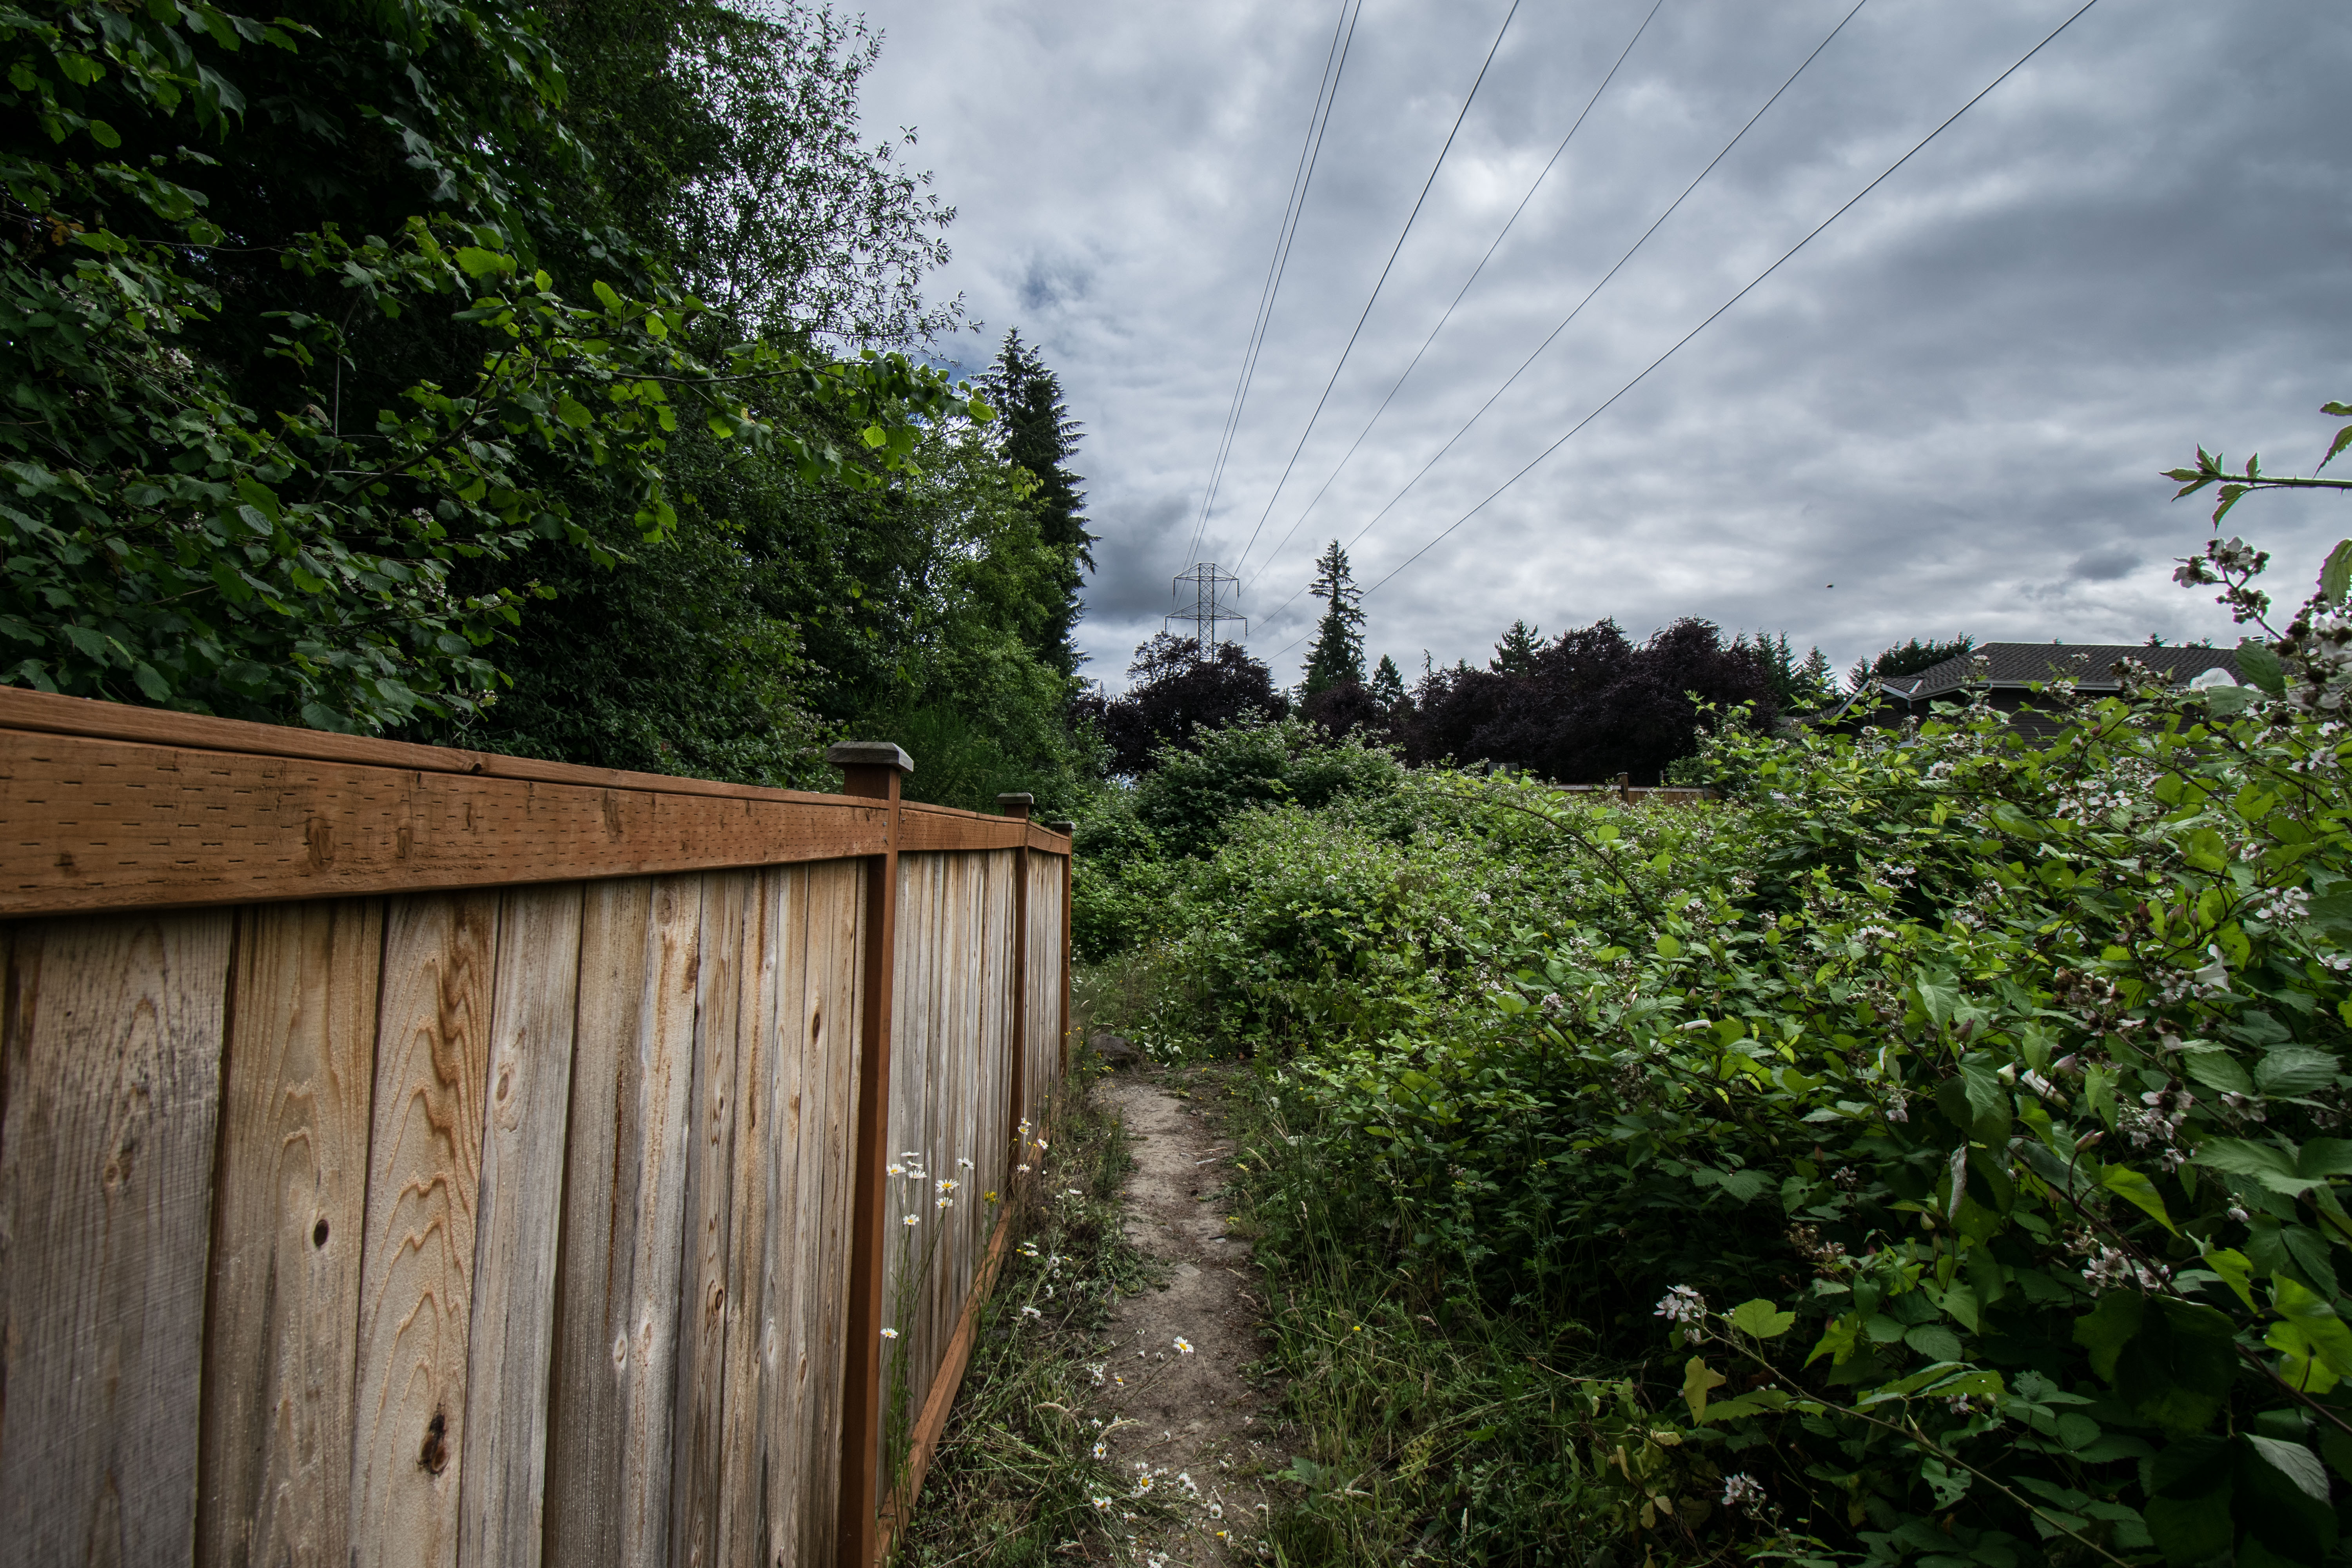 ../images/trails/horse//06 Trail nearing SE 80th Way in Olympus.jpg